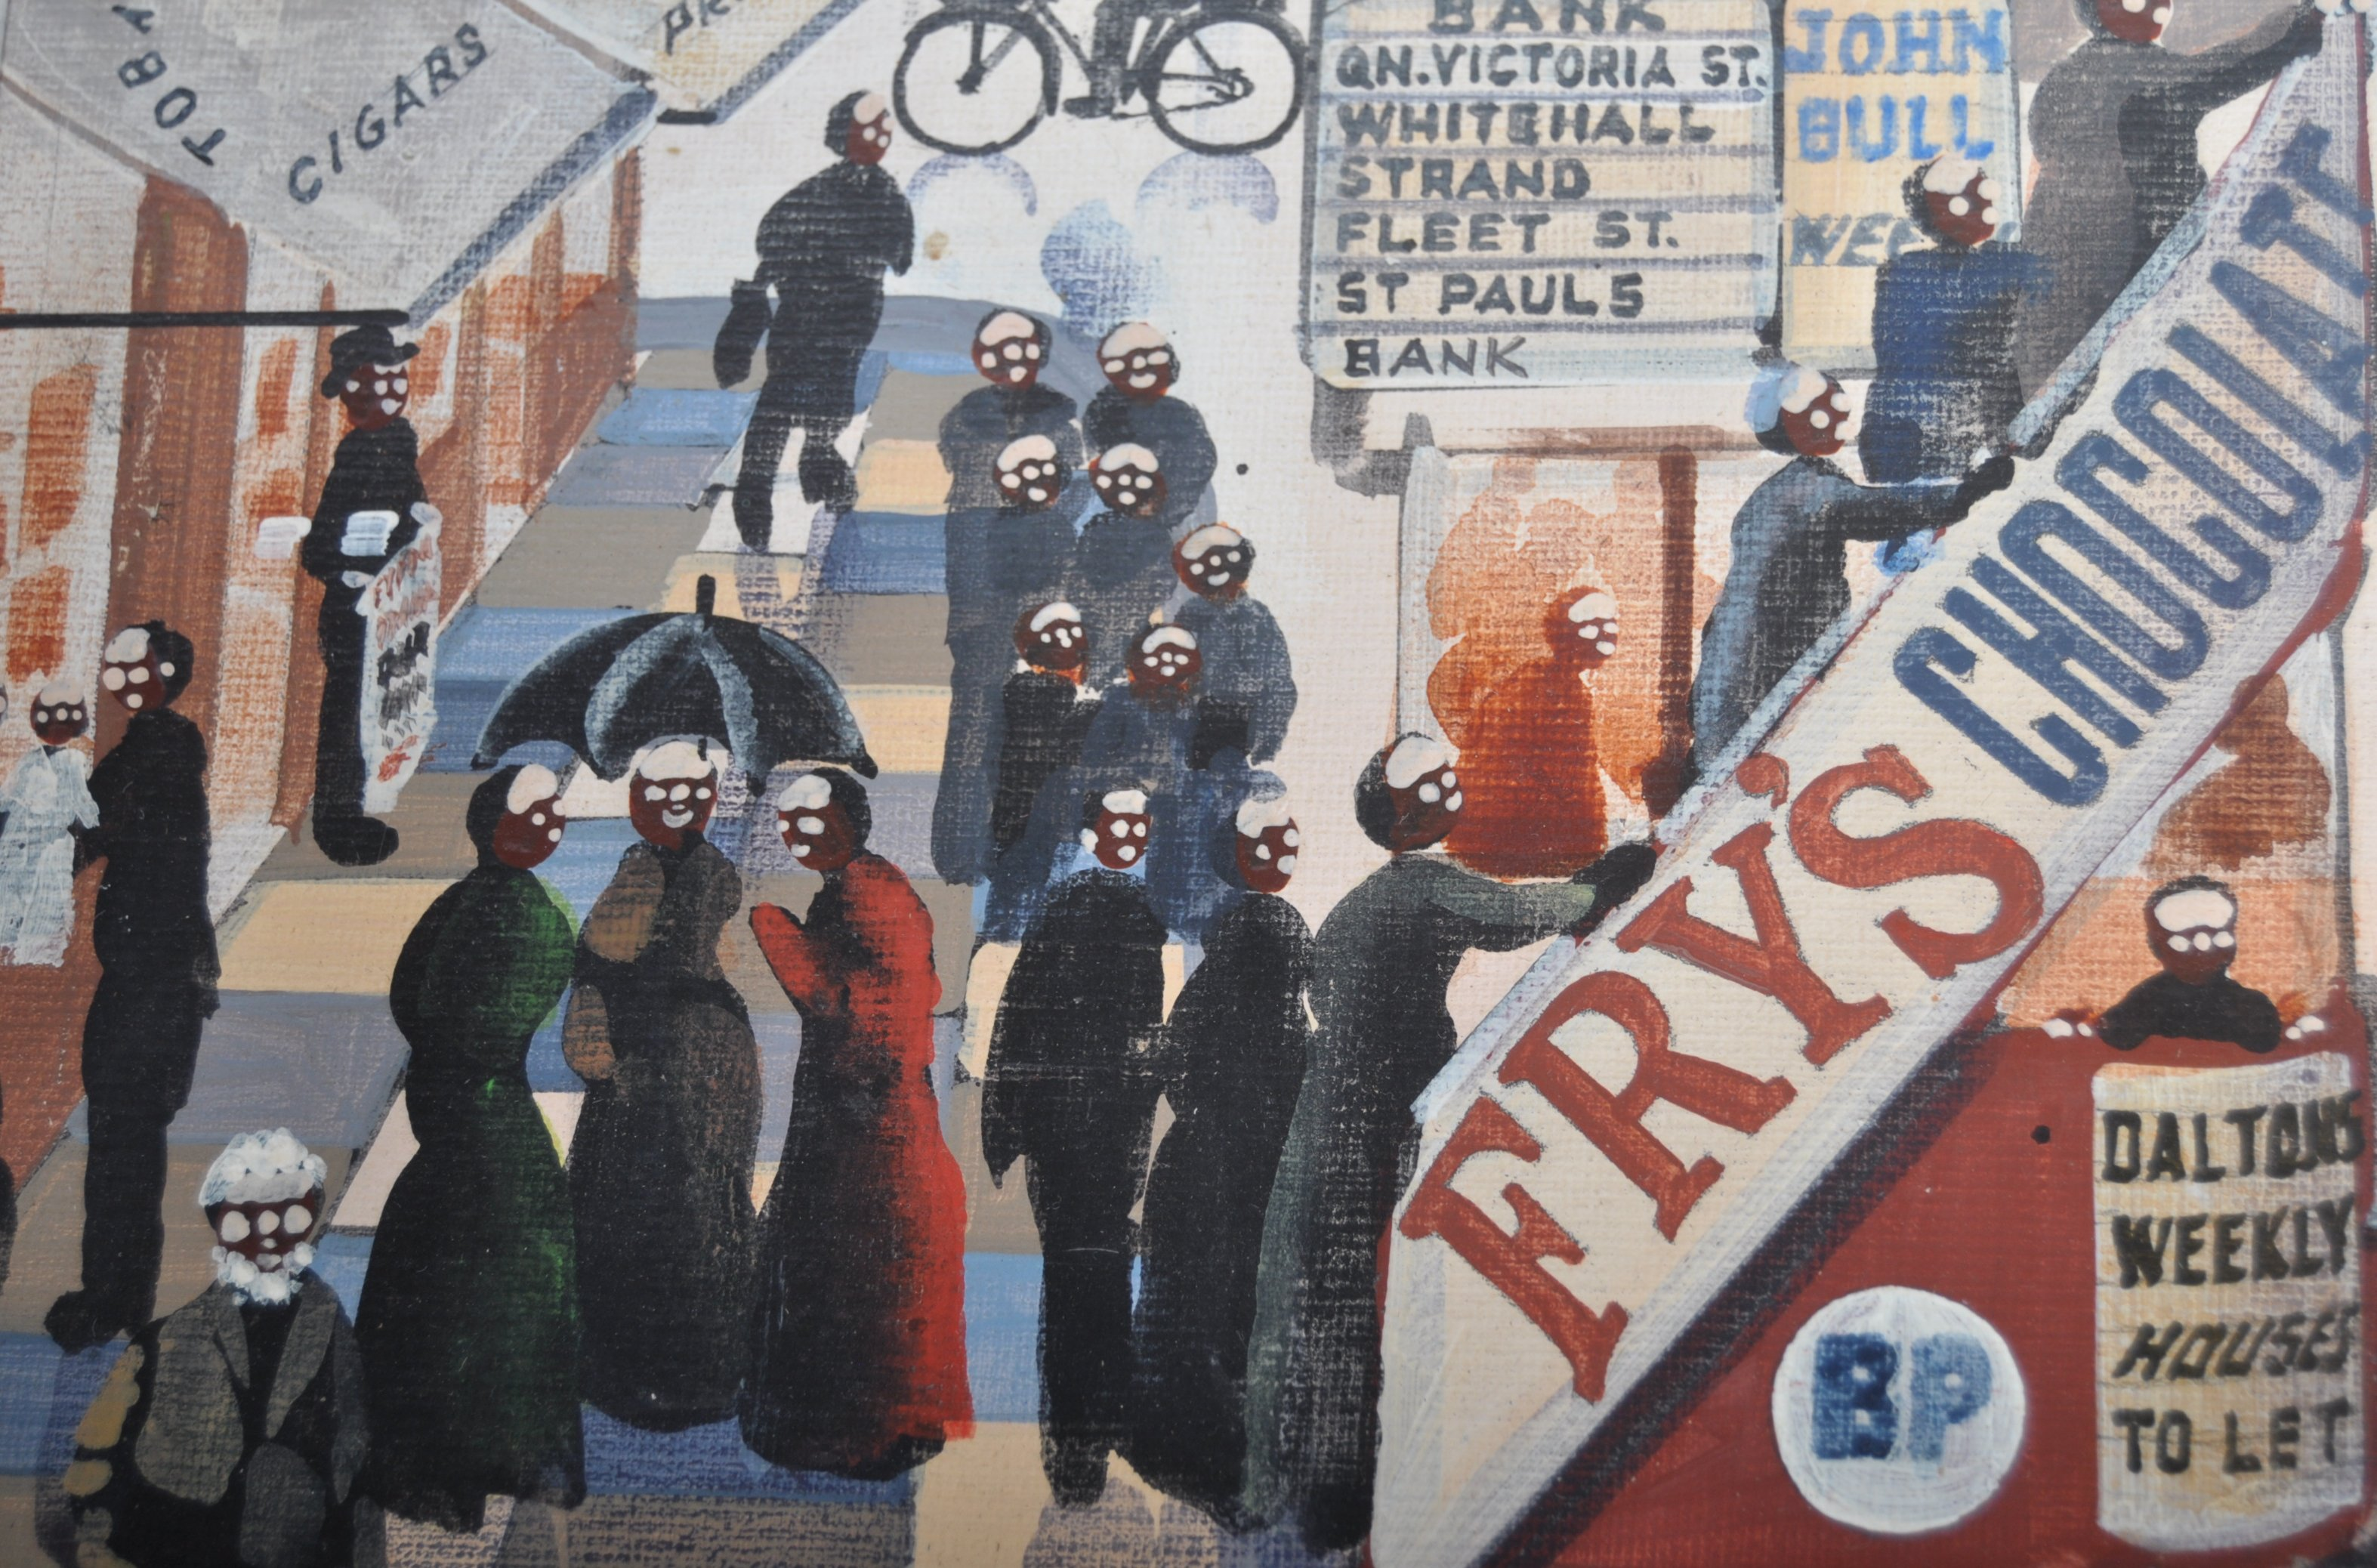 ALFRED JONES OIL ON BOARD PAINTING DEPICTING A LONDON STREET - Image 5 of 6